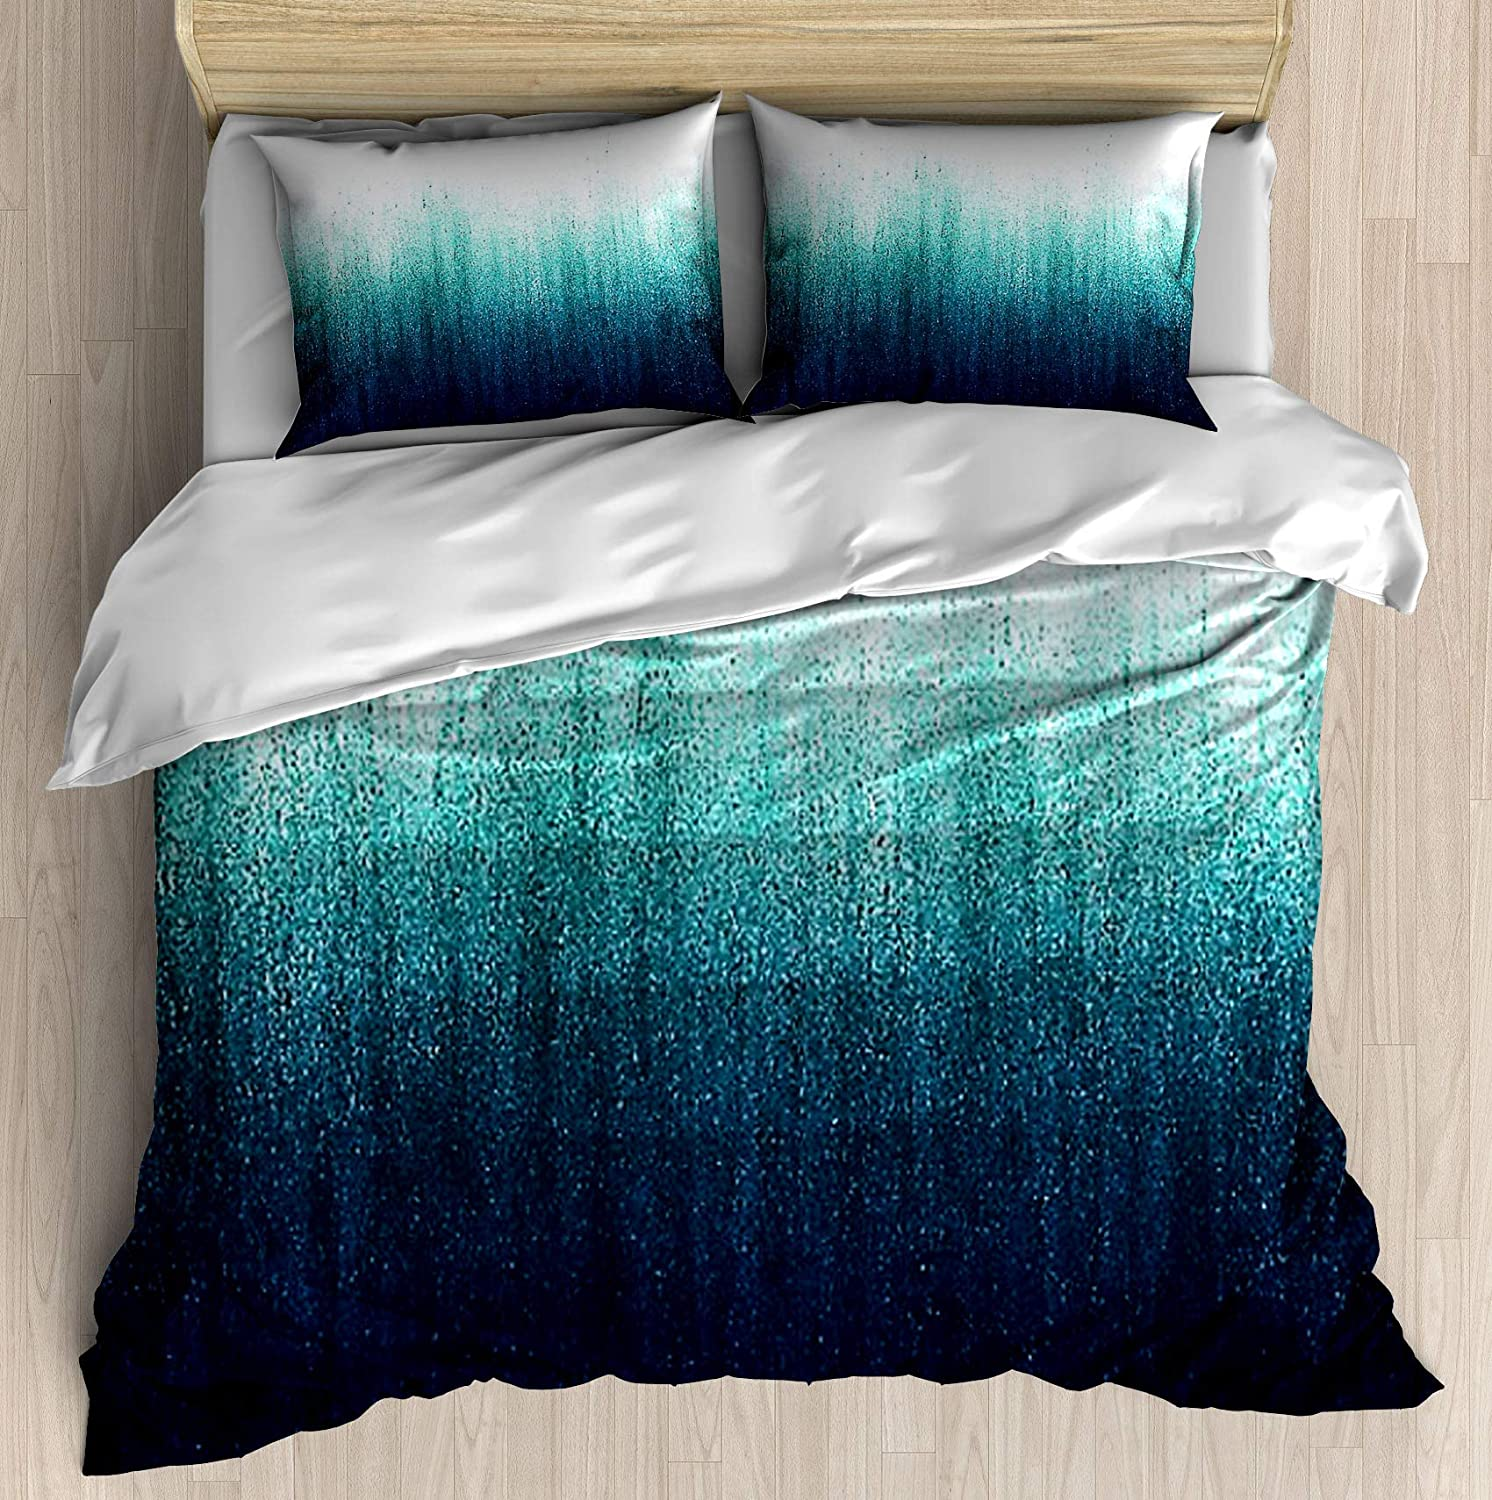 Teal Ombre Duvet Cover Set Printed Bed Unique Indefinitely 67% OFF of fixed price Pillowcase Des